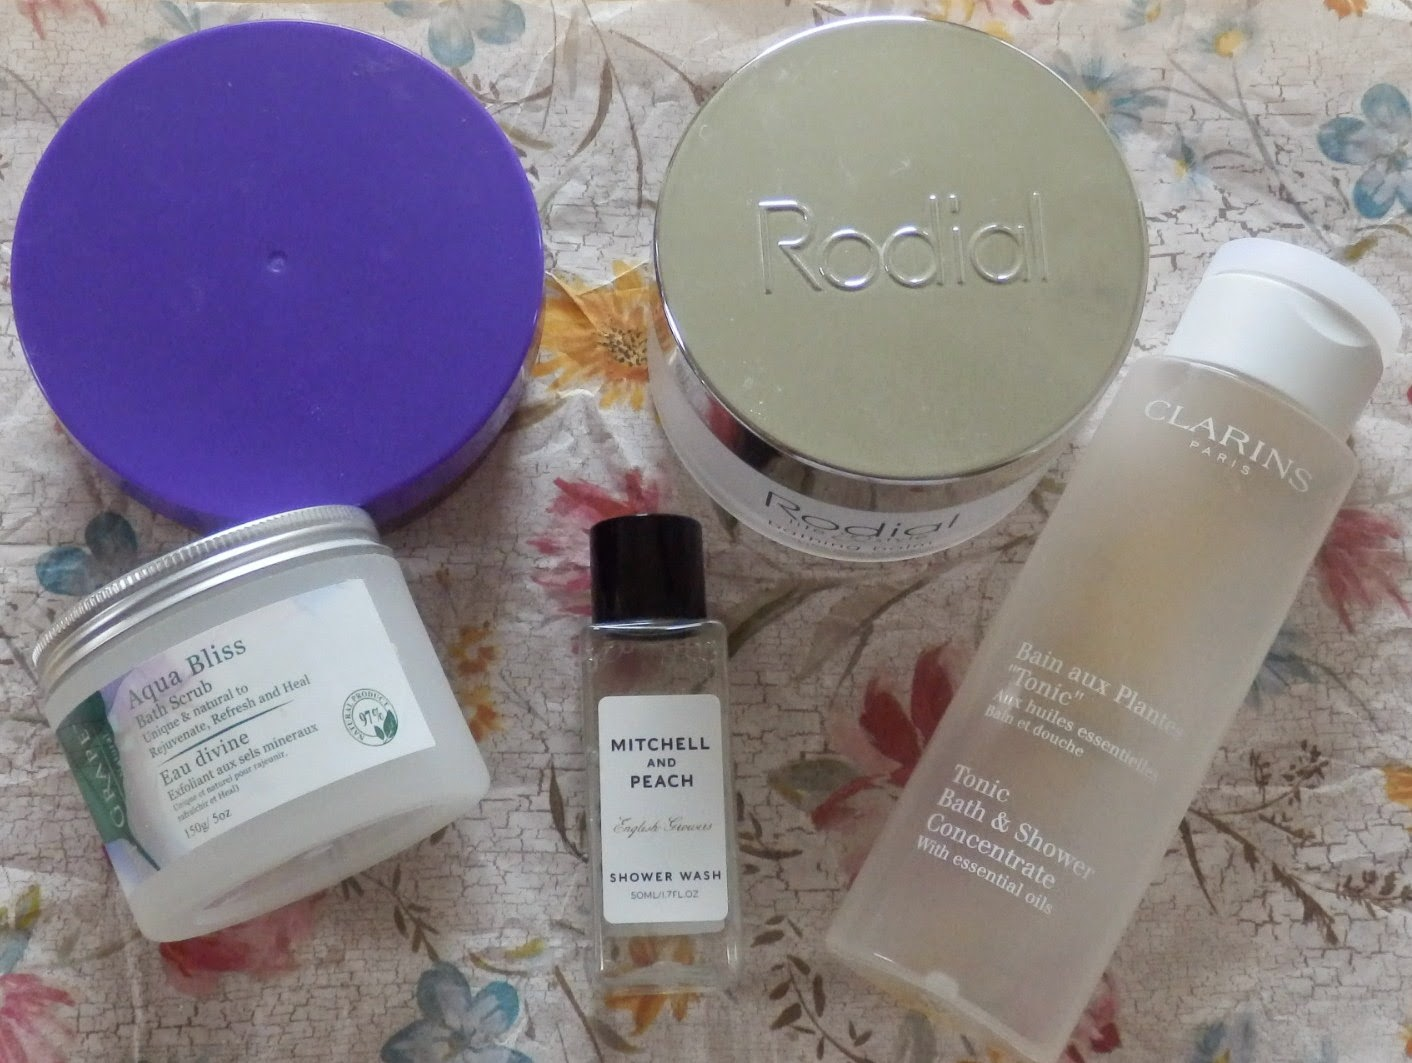 My latest Empties Post